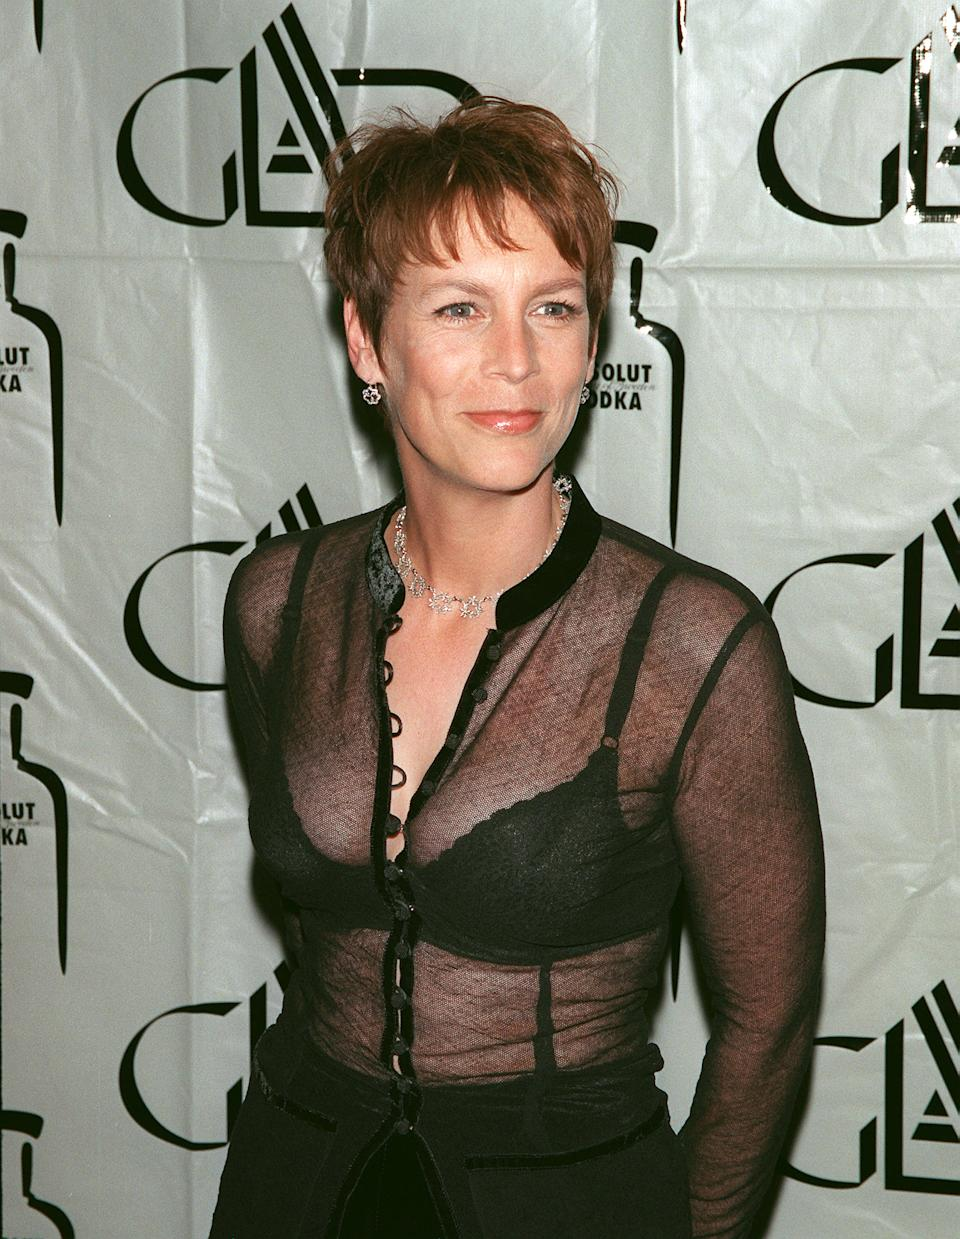 (Original Caption) Jamie Lee Curtis at the Century Plaza Hotel. (Photo by Frank Trapper/Corbis via Getty Images)